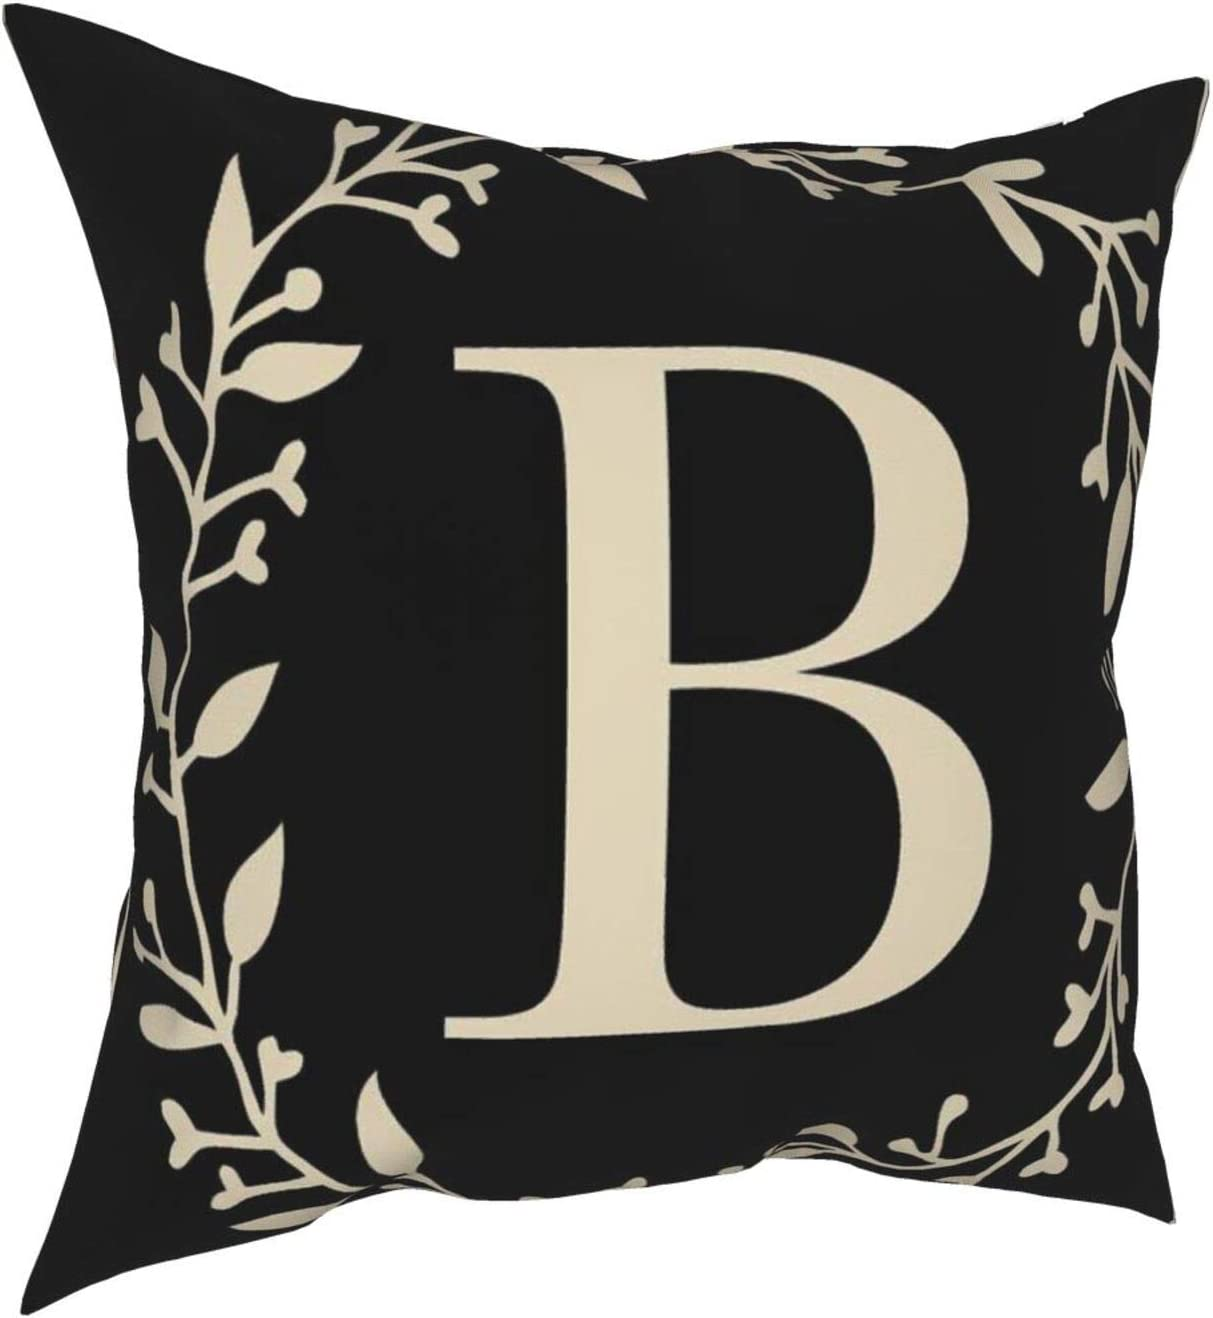 MSGUIDE Classic Monogram Letter B Throw Pillow Cover Decorative Square Pillowcase Super Soft Farmhouse Cushion Case 18x18 Inches for Sofa Couch Bed Home Decoration